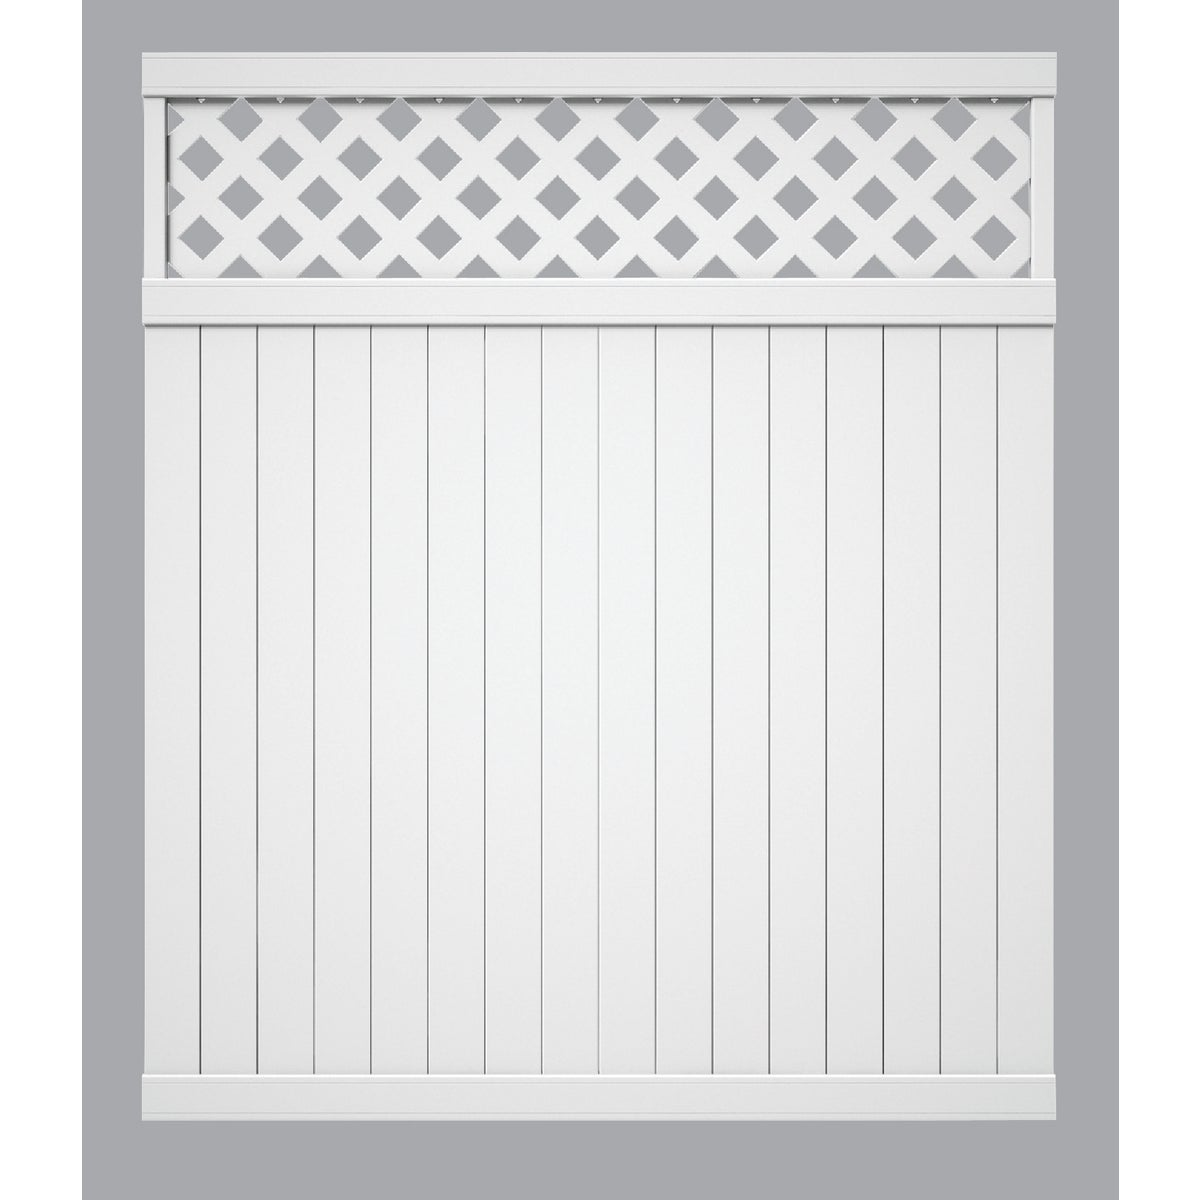 6X6 WH VNL LAT TOP FENCE - 128011 by Ufpi Lbr & Treated